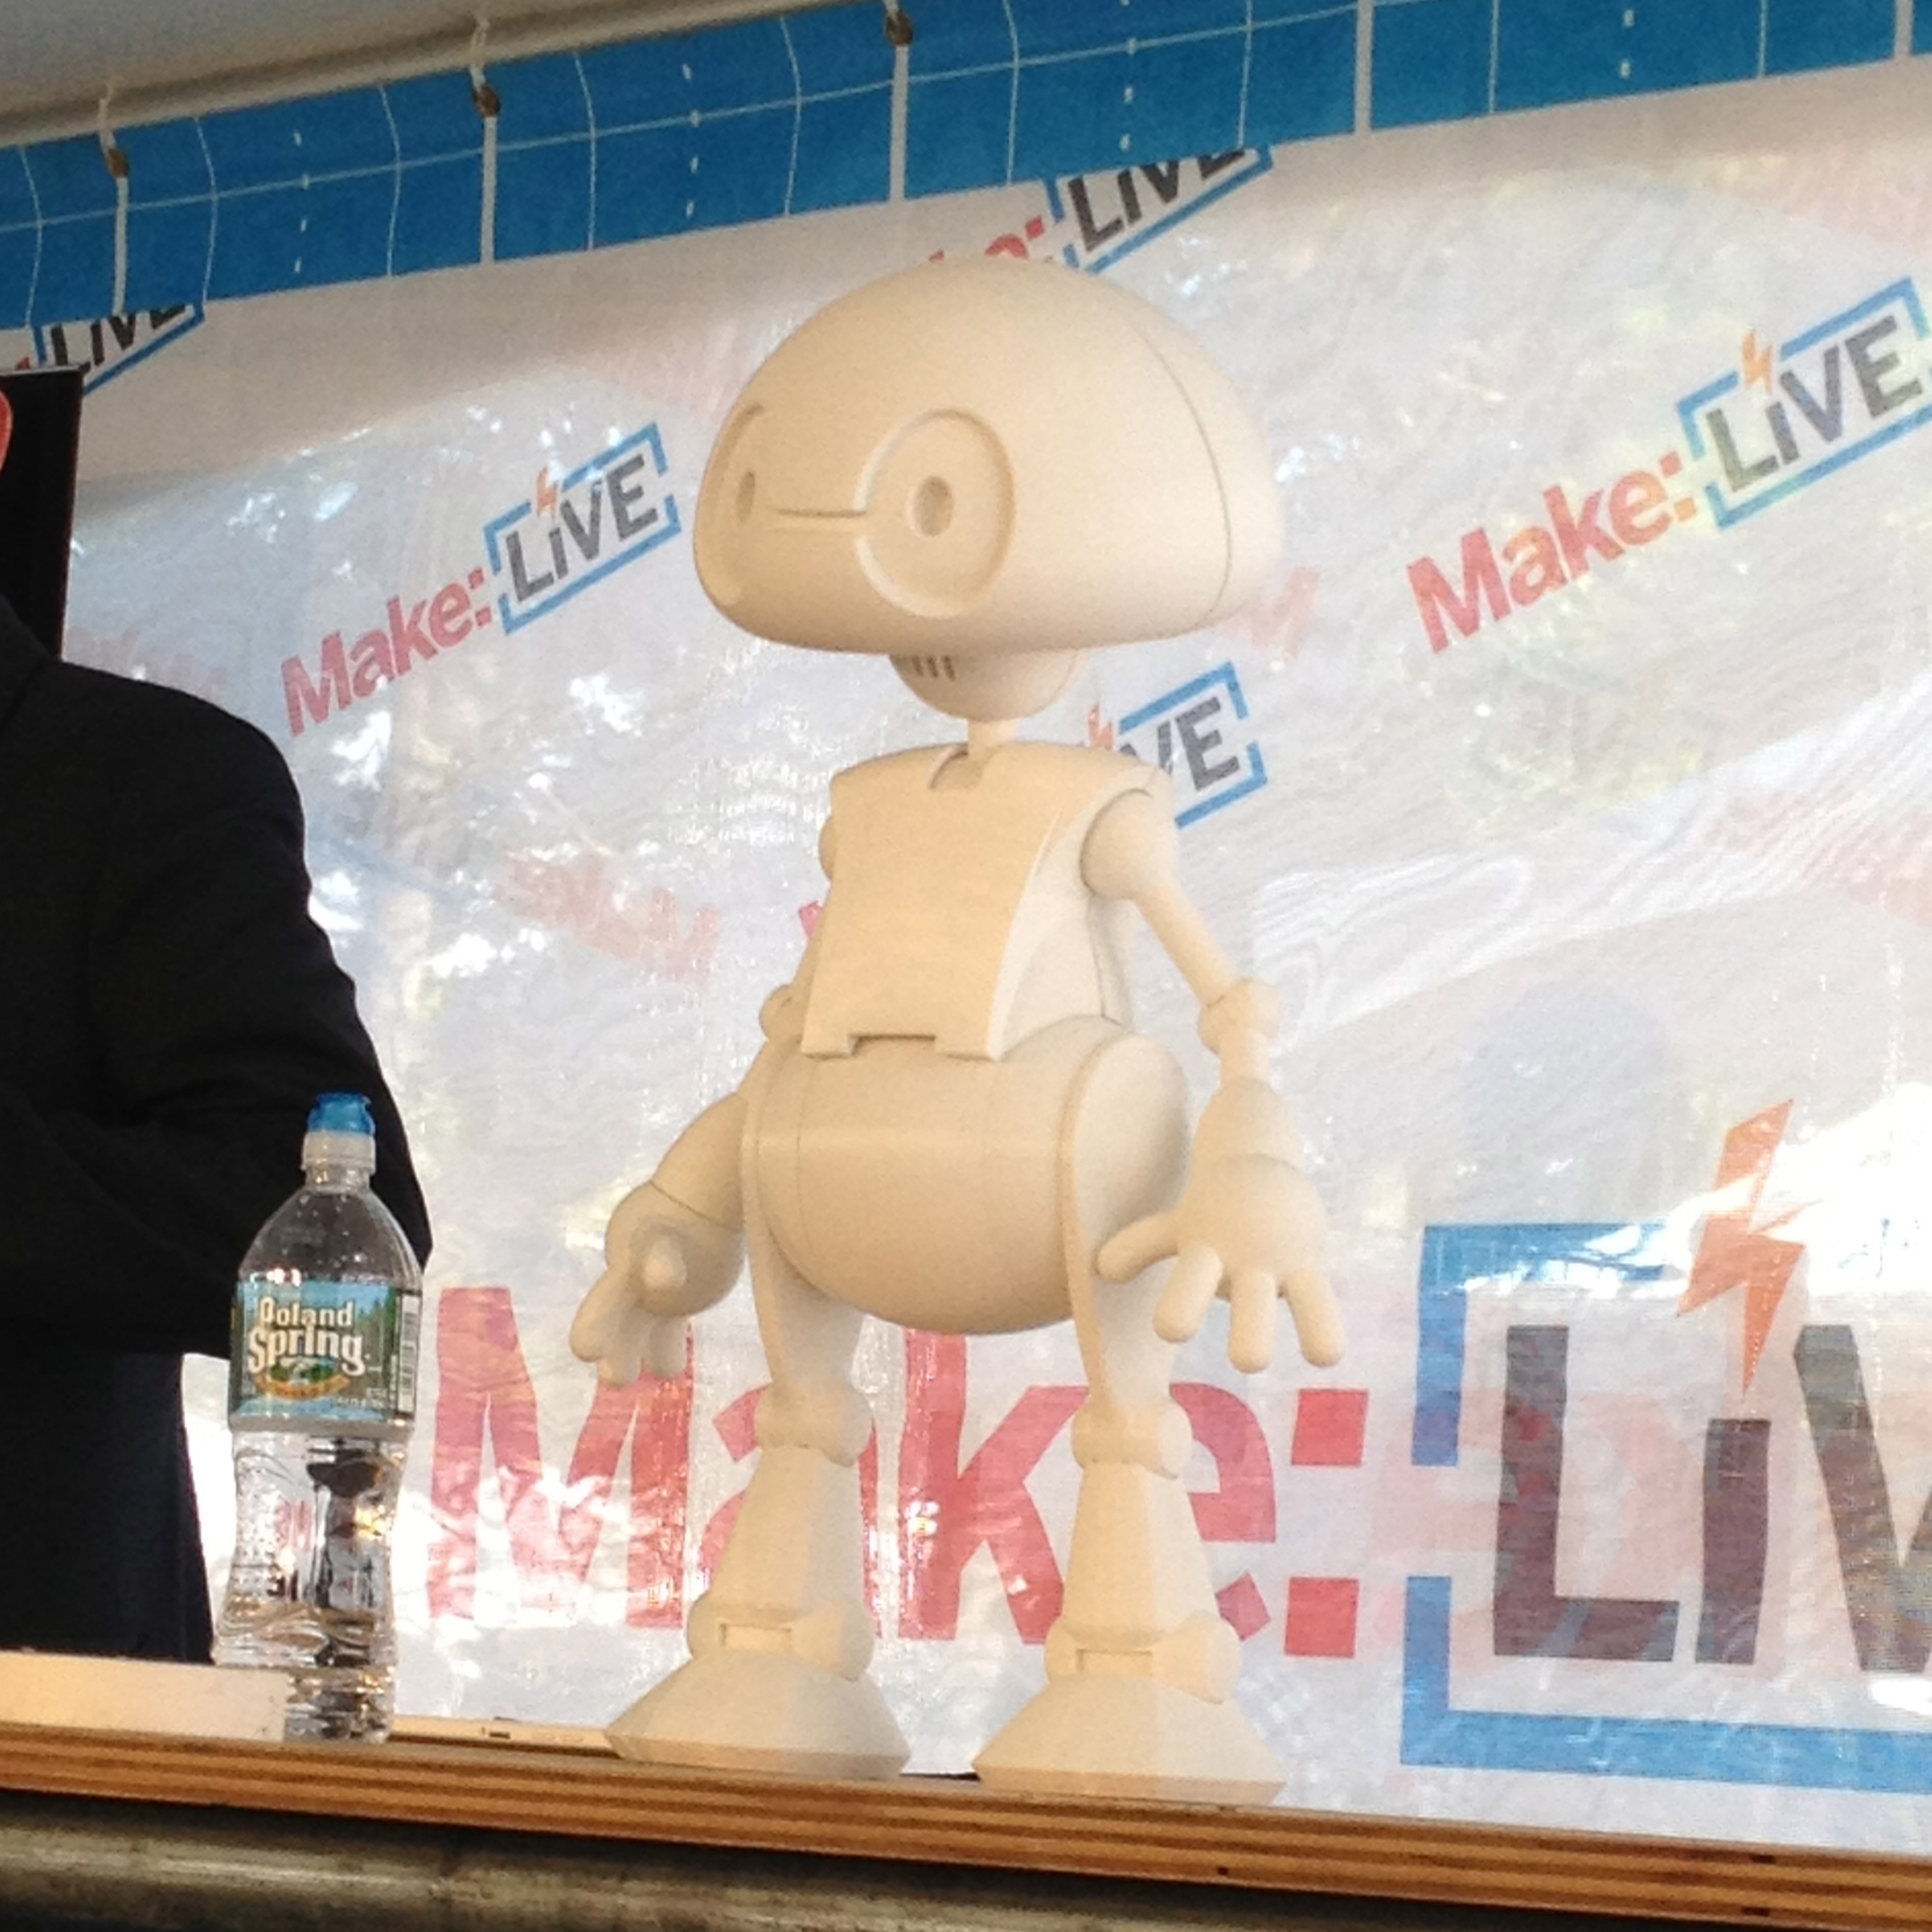 Jimmy on the Make: Live stage.